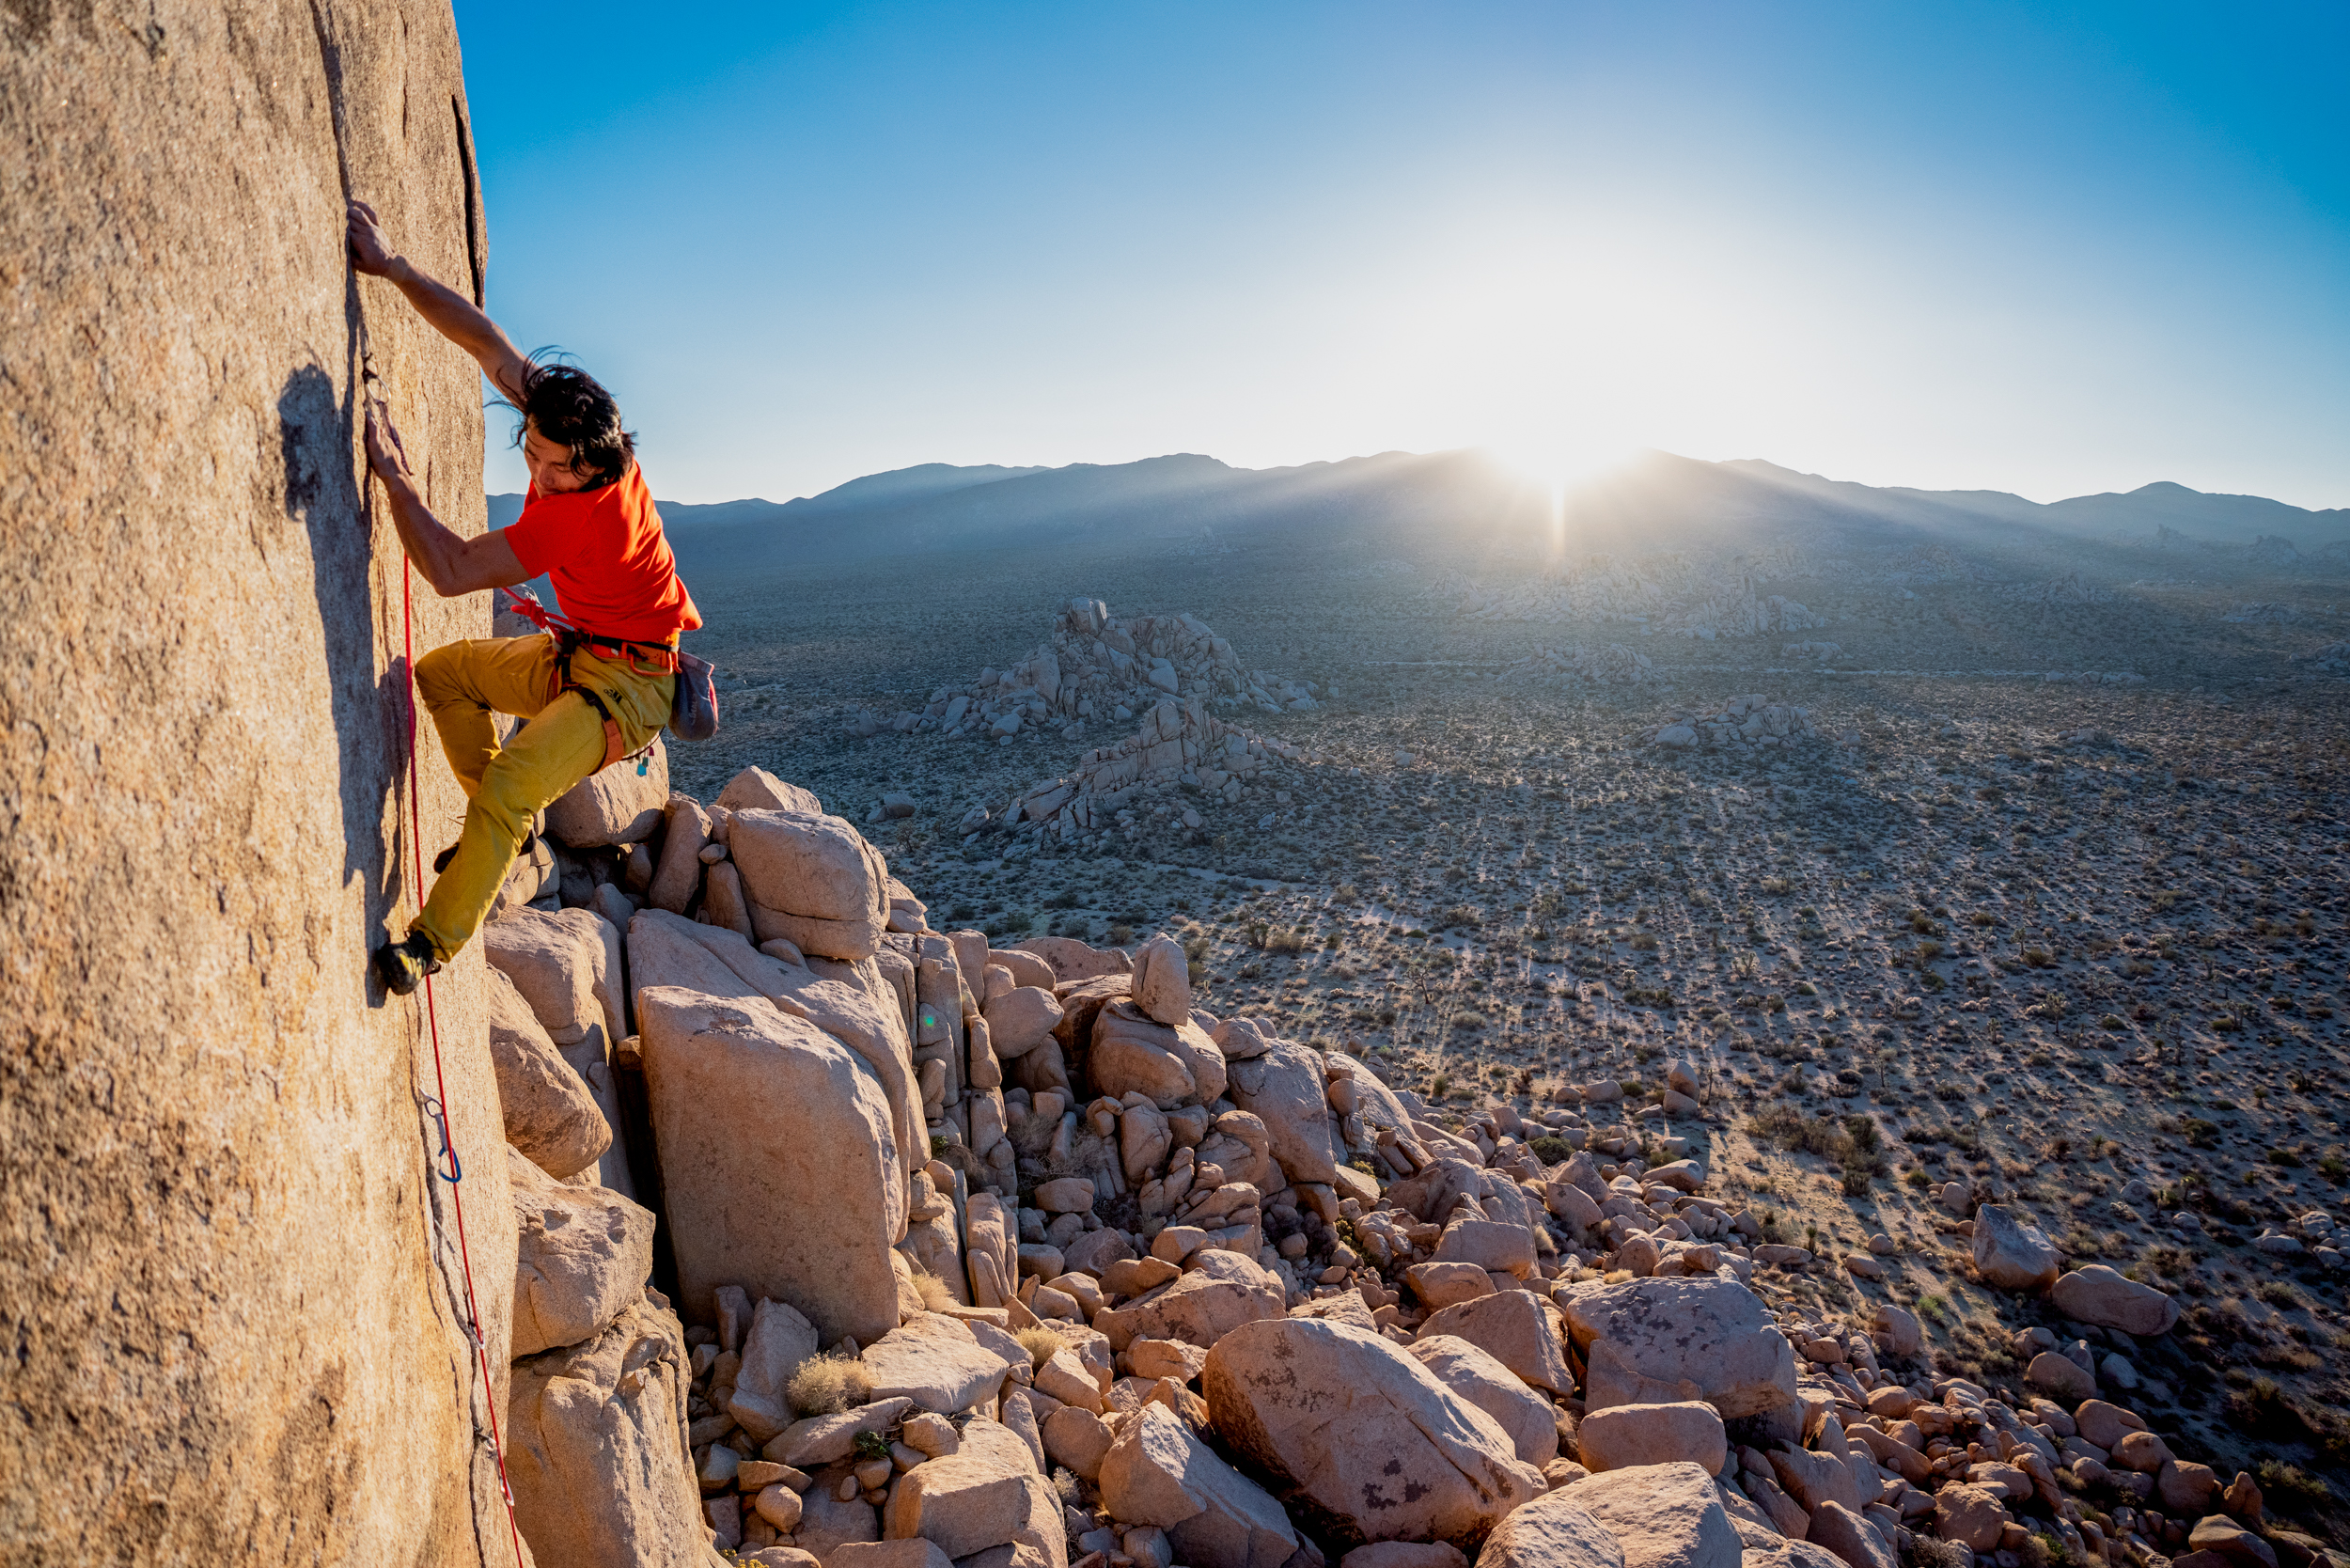 Professional Chinese climber Abond climbing Equinox in Joshua Tree. Photo: Ben Horton